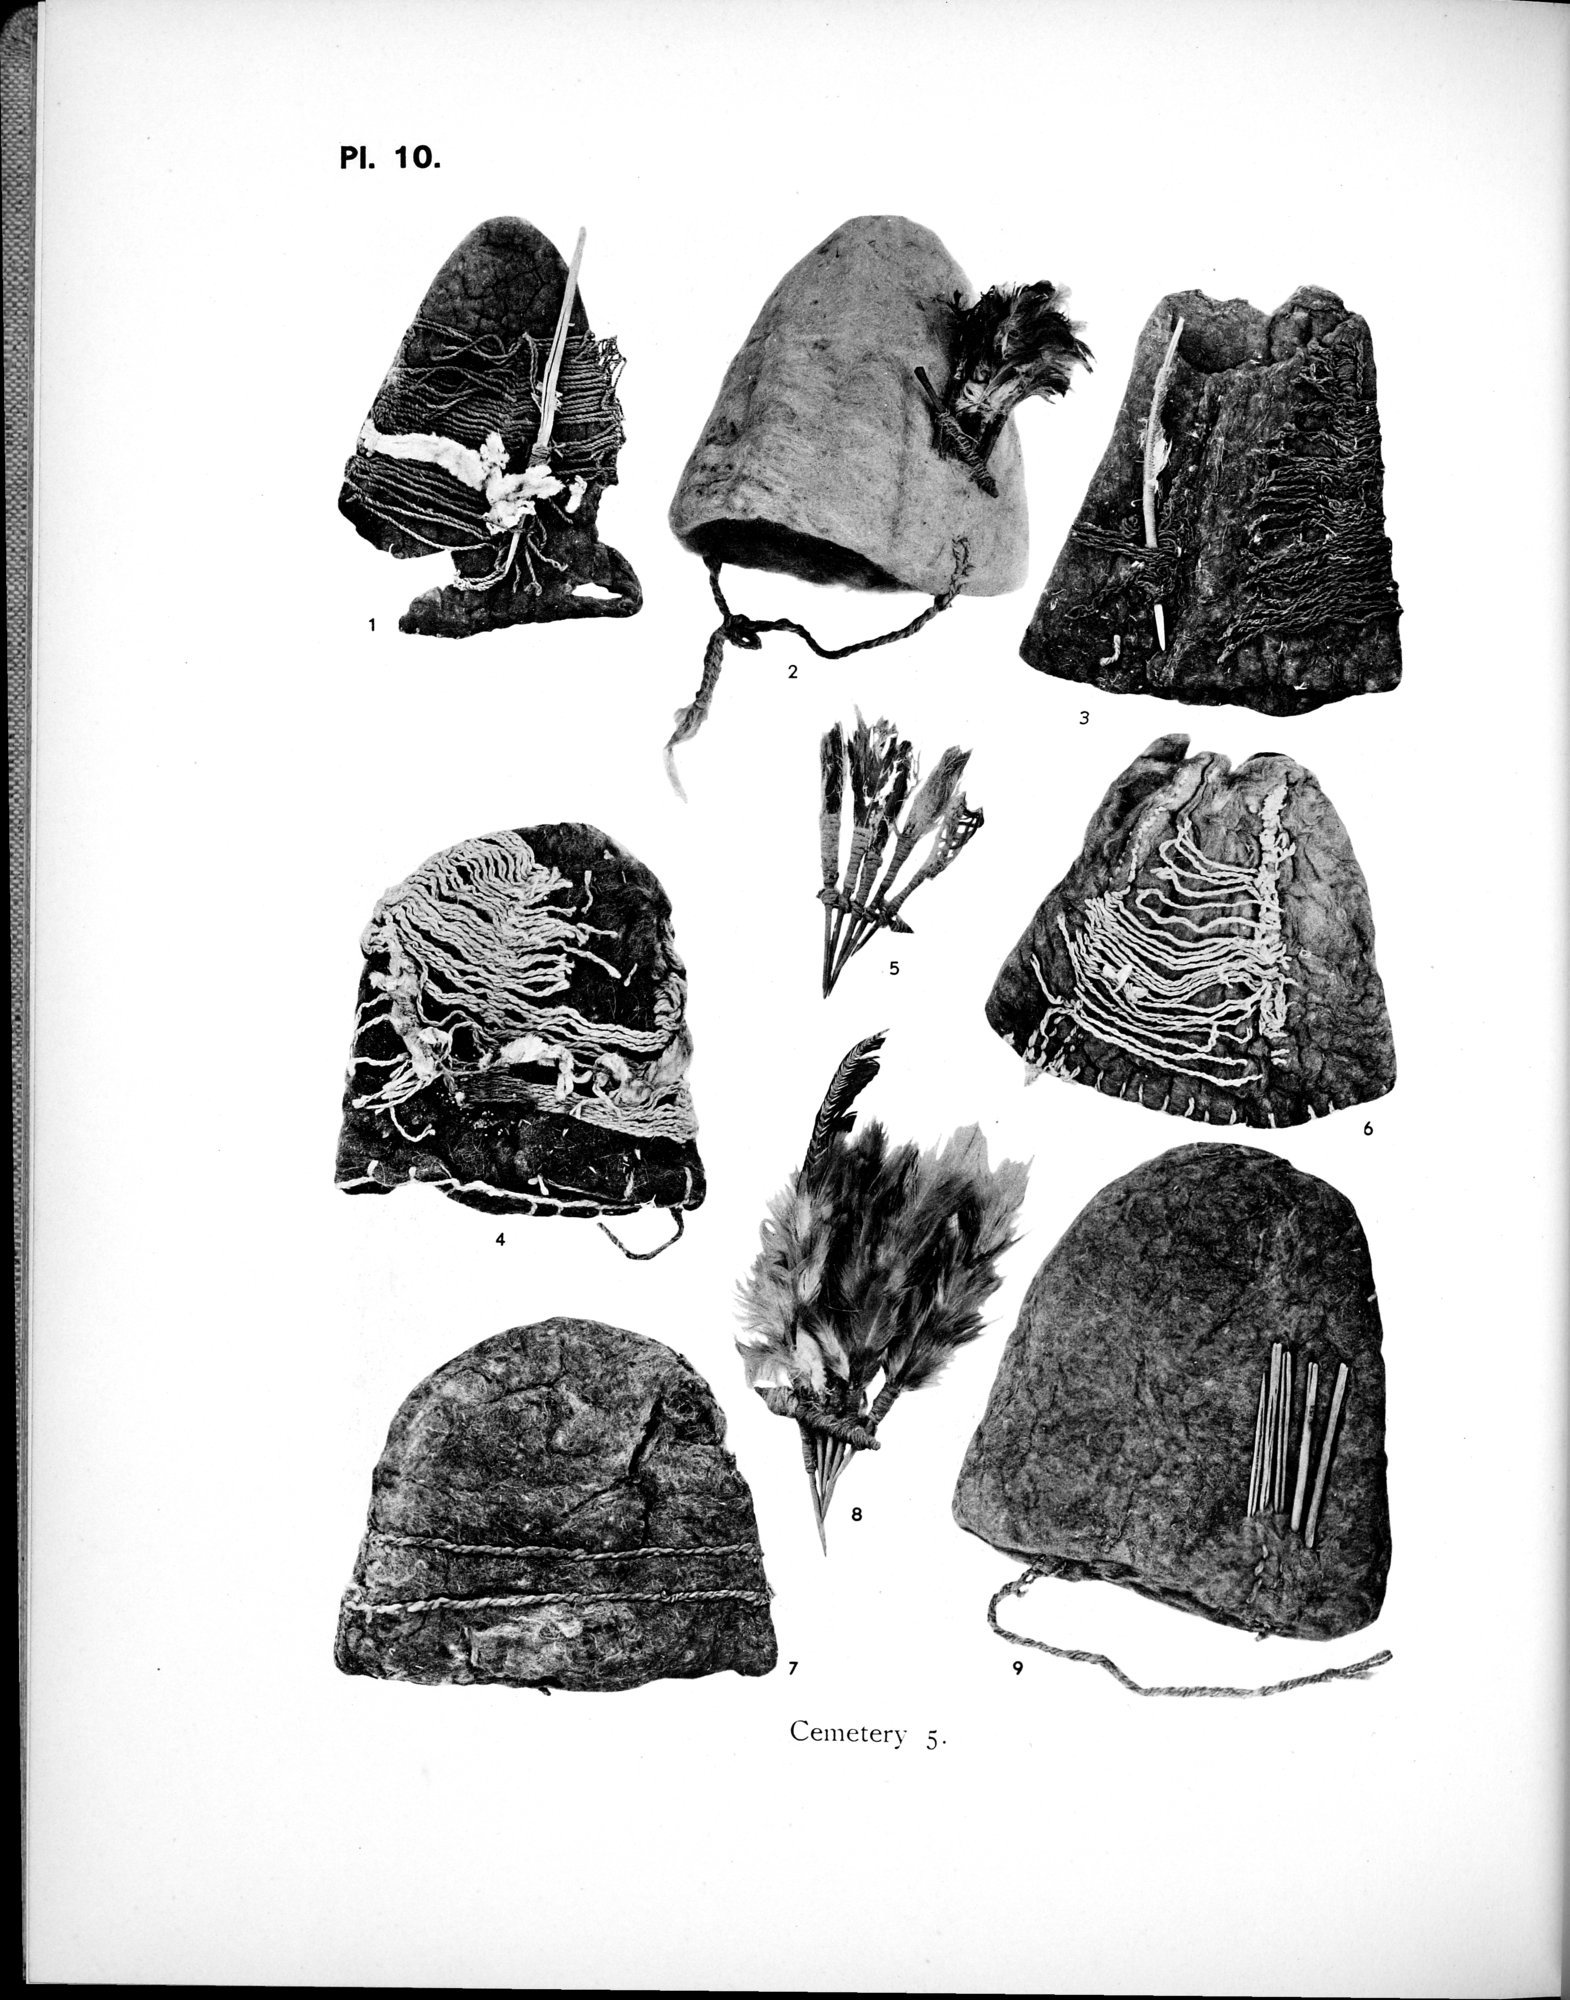 Archaeological Researches in Sinkiang : vol.1 / Page 298 (Grayscale High Resolution Image)